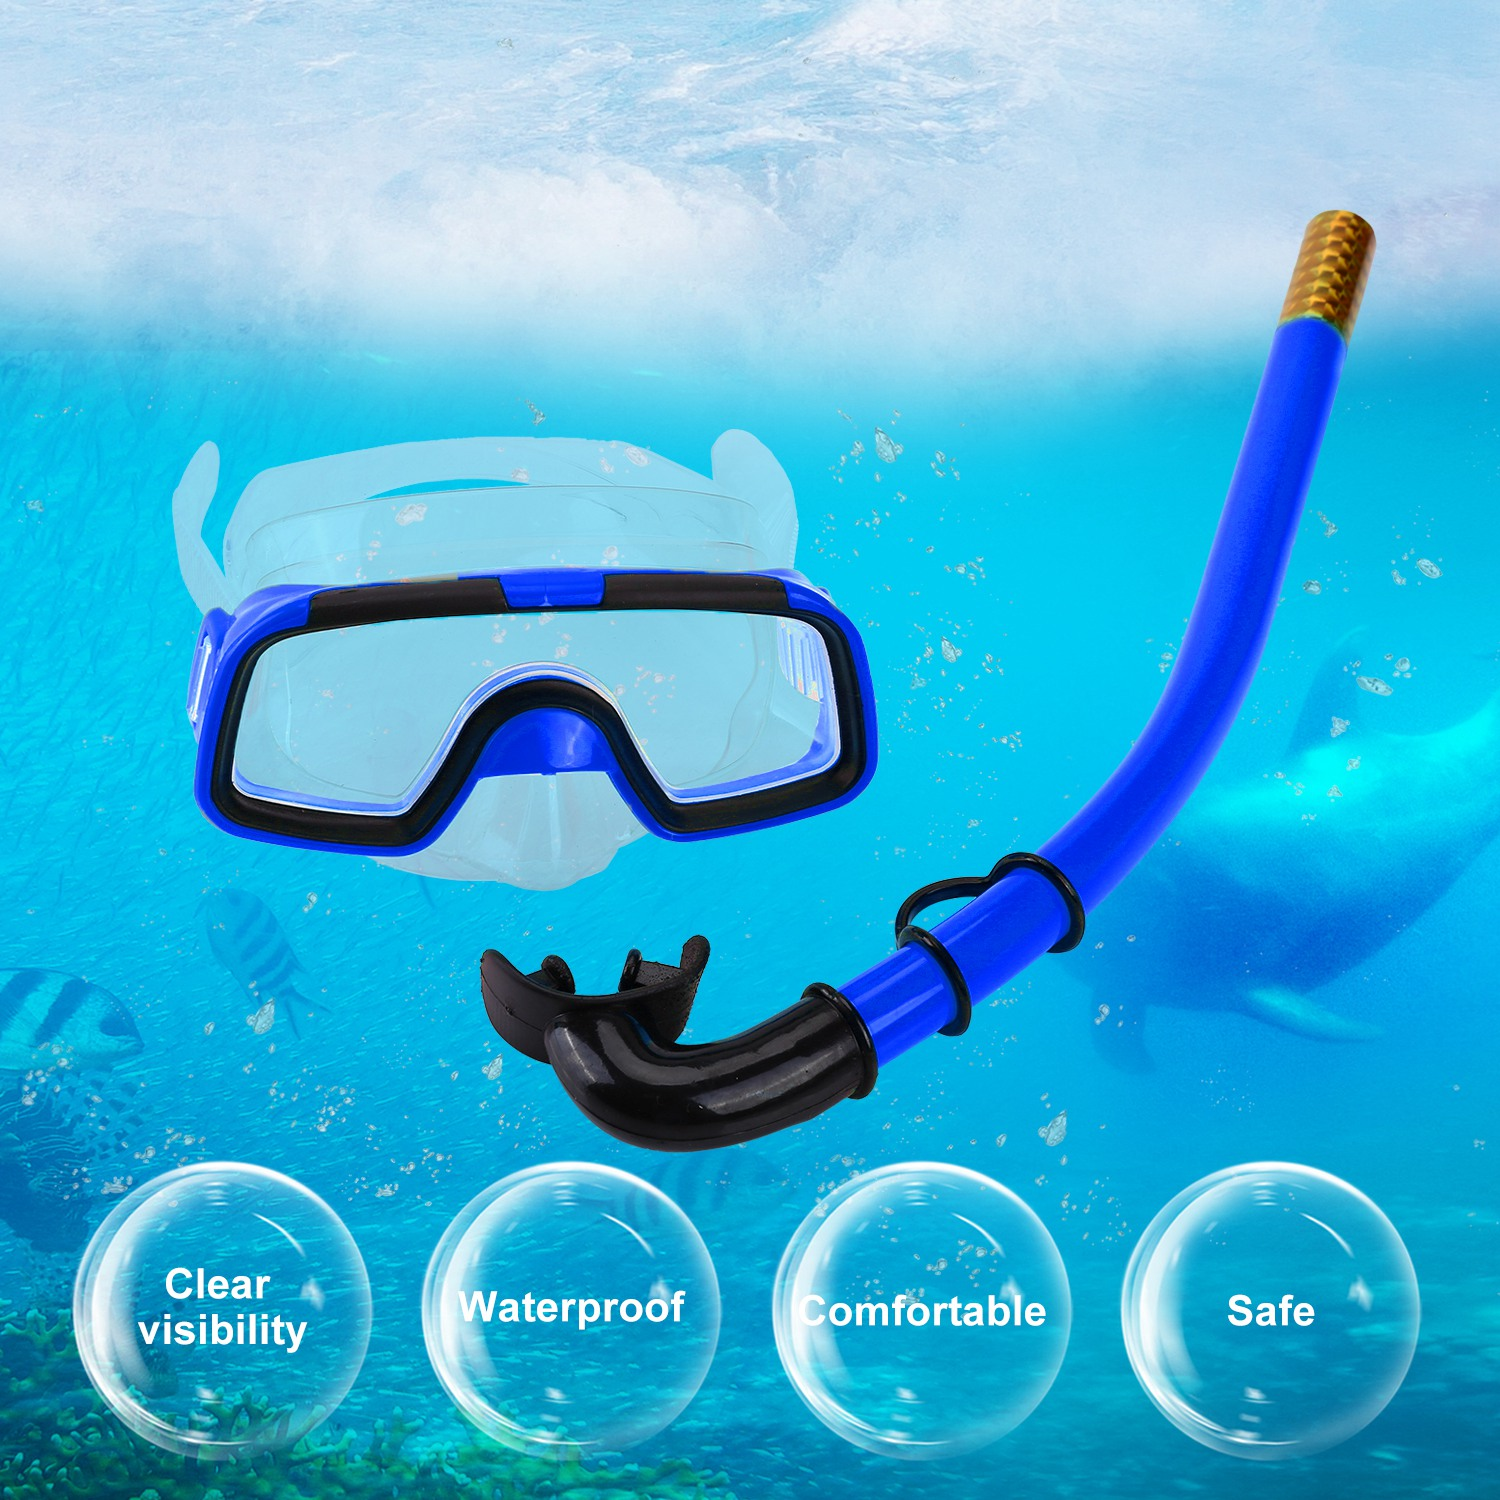 Yosoo Children Kids Swimming Diving Silicone Fins+Snorkel Scuba Eyeglasses+Mask Snorkel Orange, Kids Swimming Diving... by